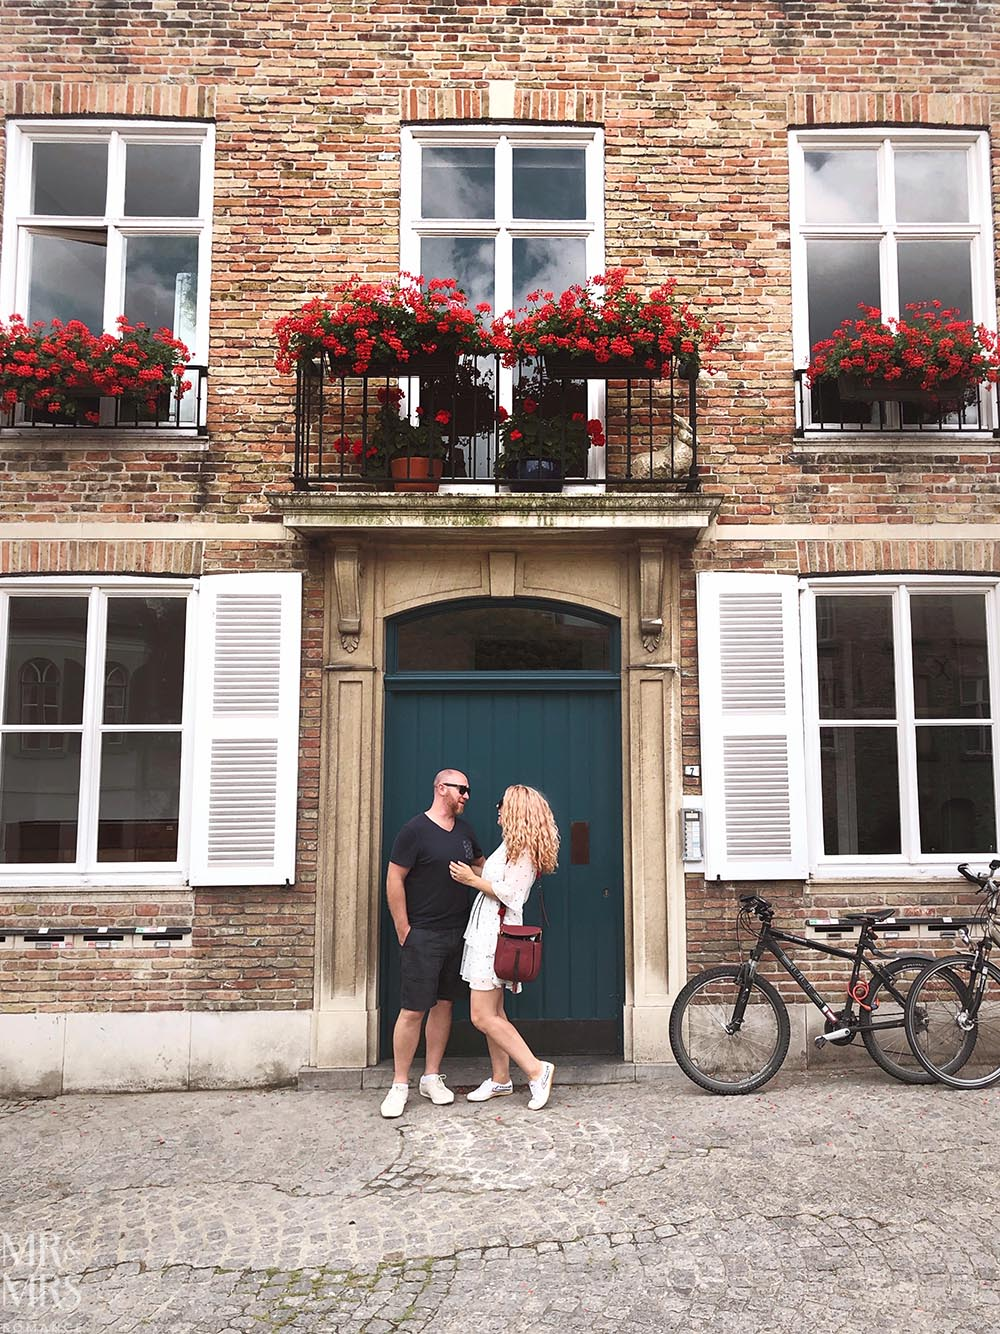 Postcards from Bruges, Belgium - us